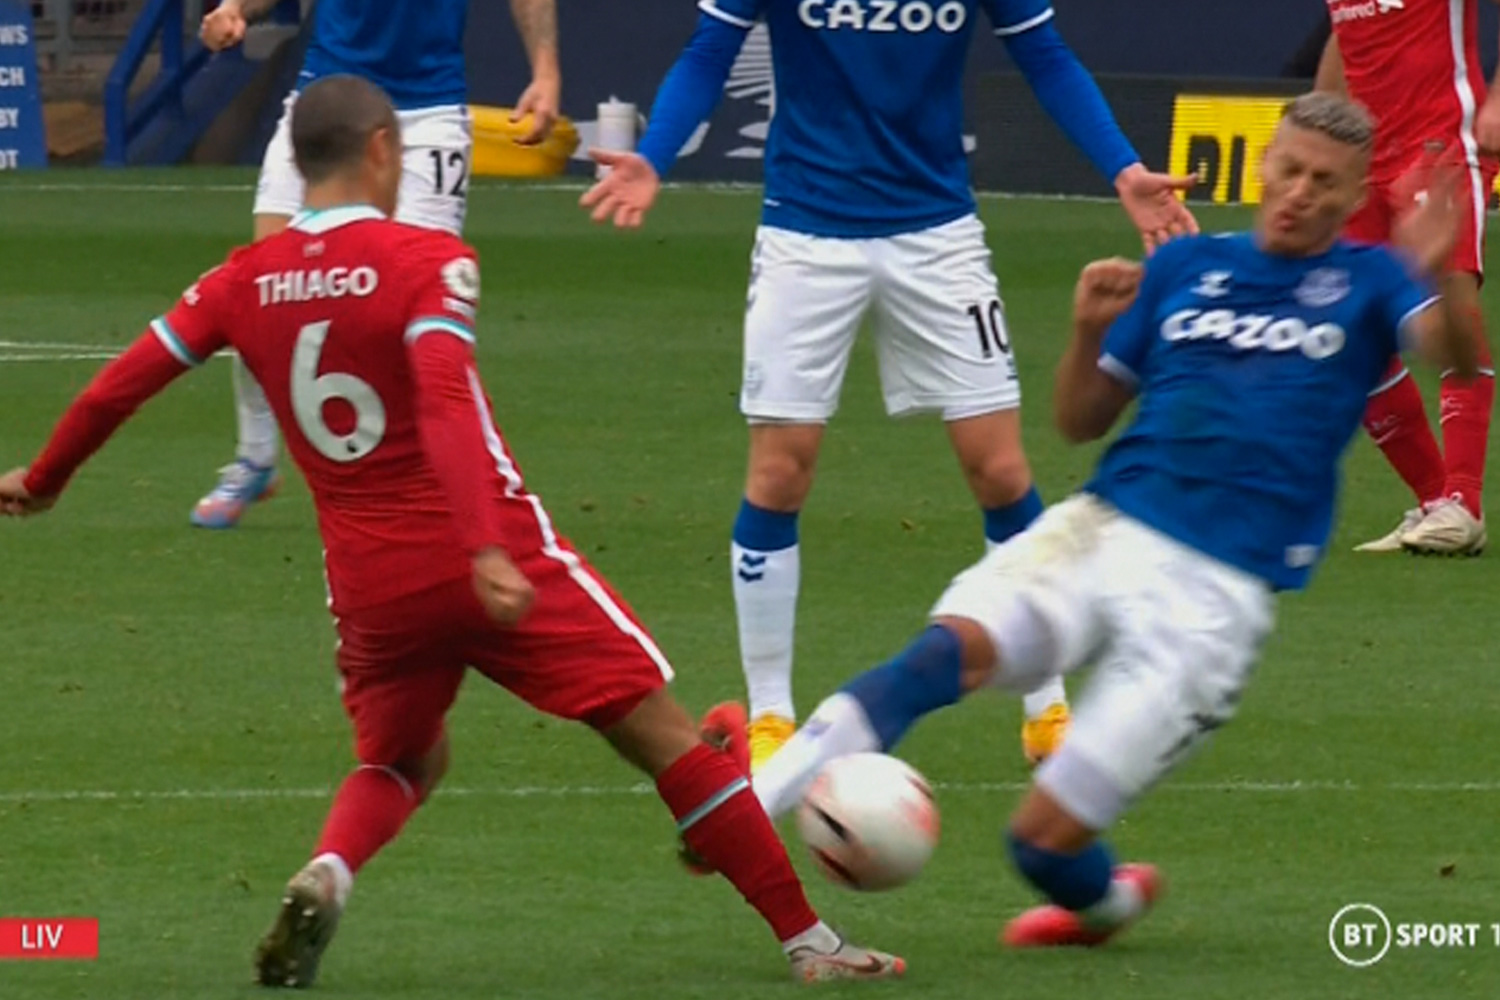 McManaman 'has to turn away' from replays of Richarlison horror challenge on Liverpool ace Thiago that leads to red card